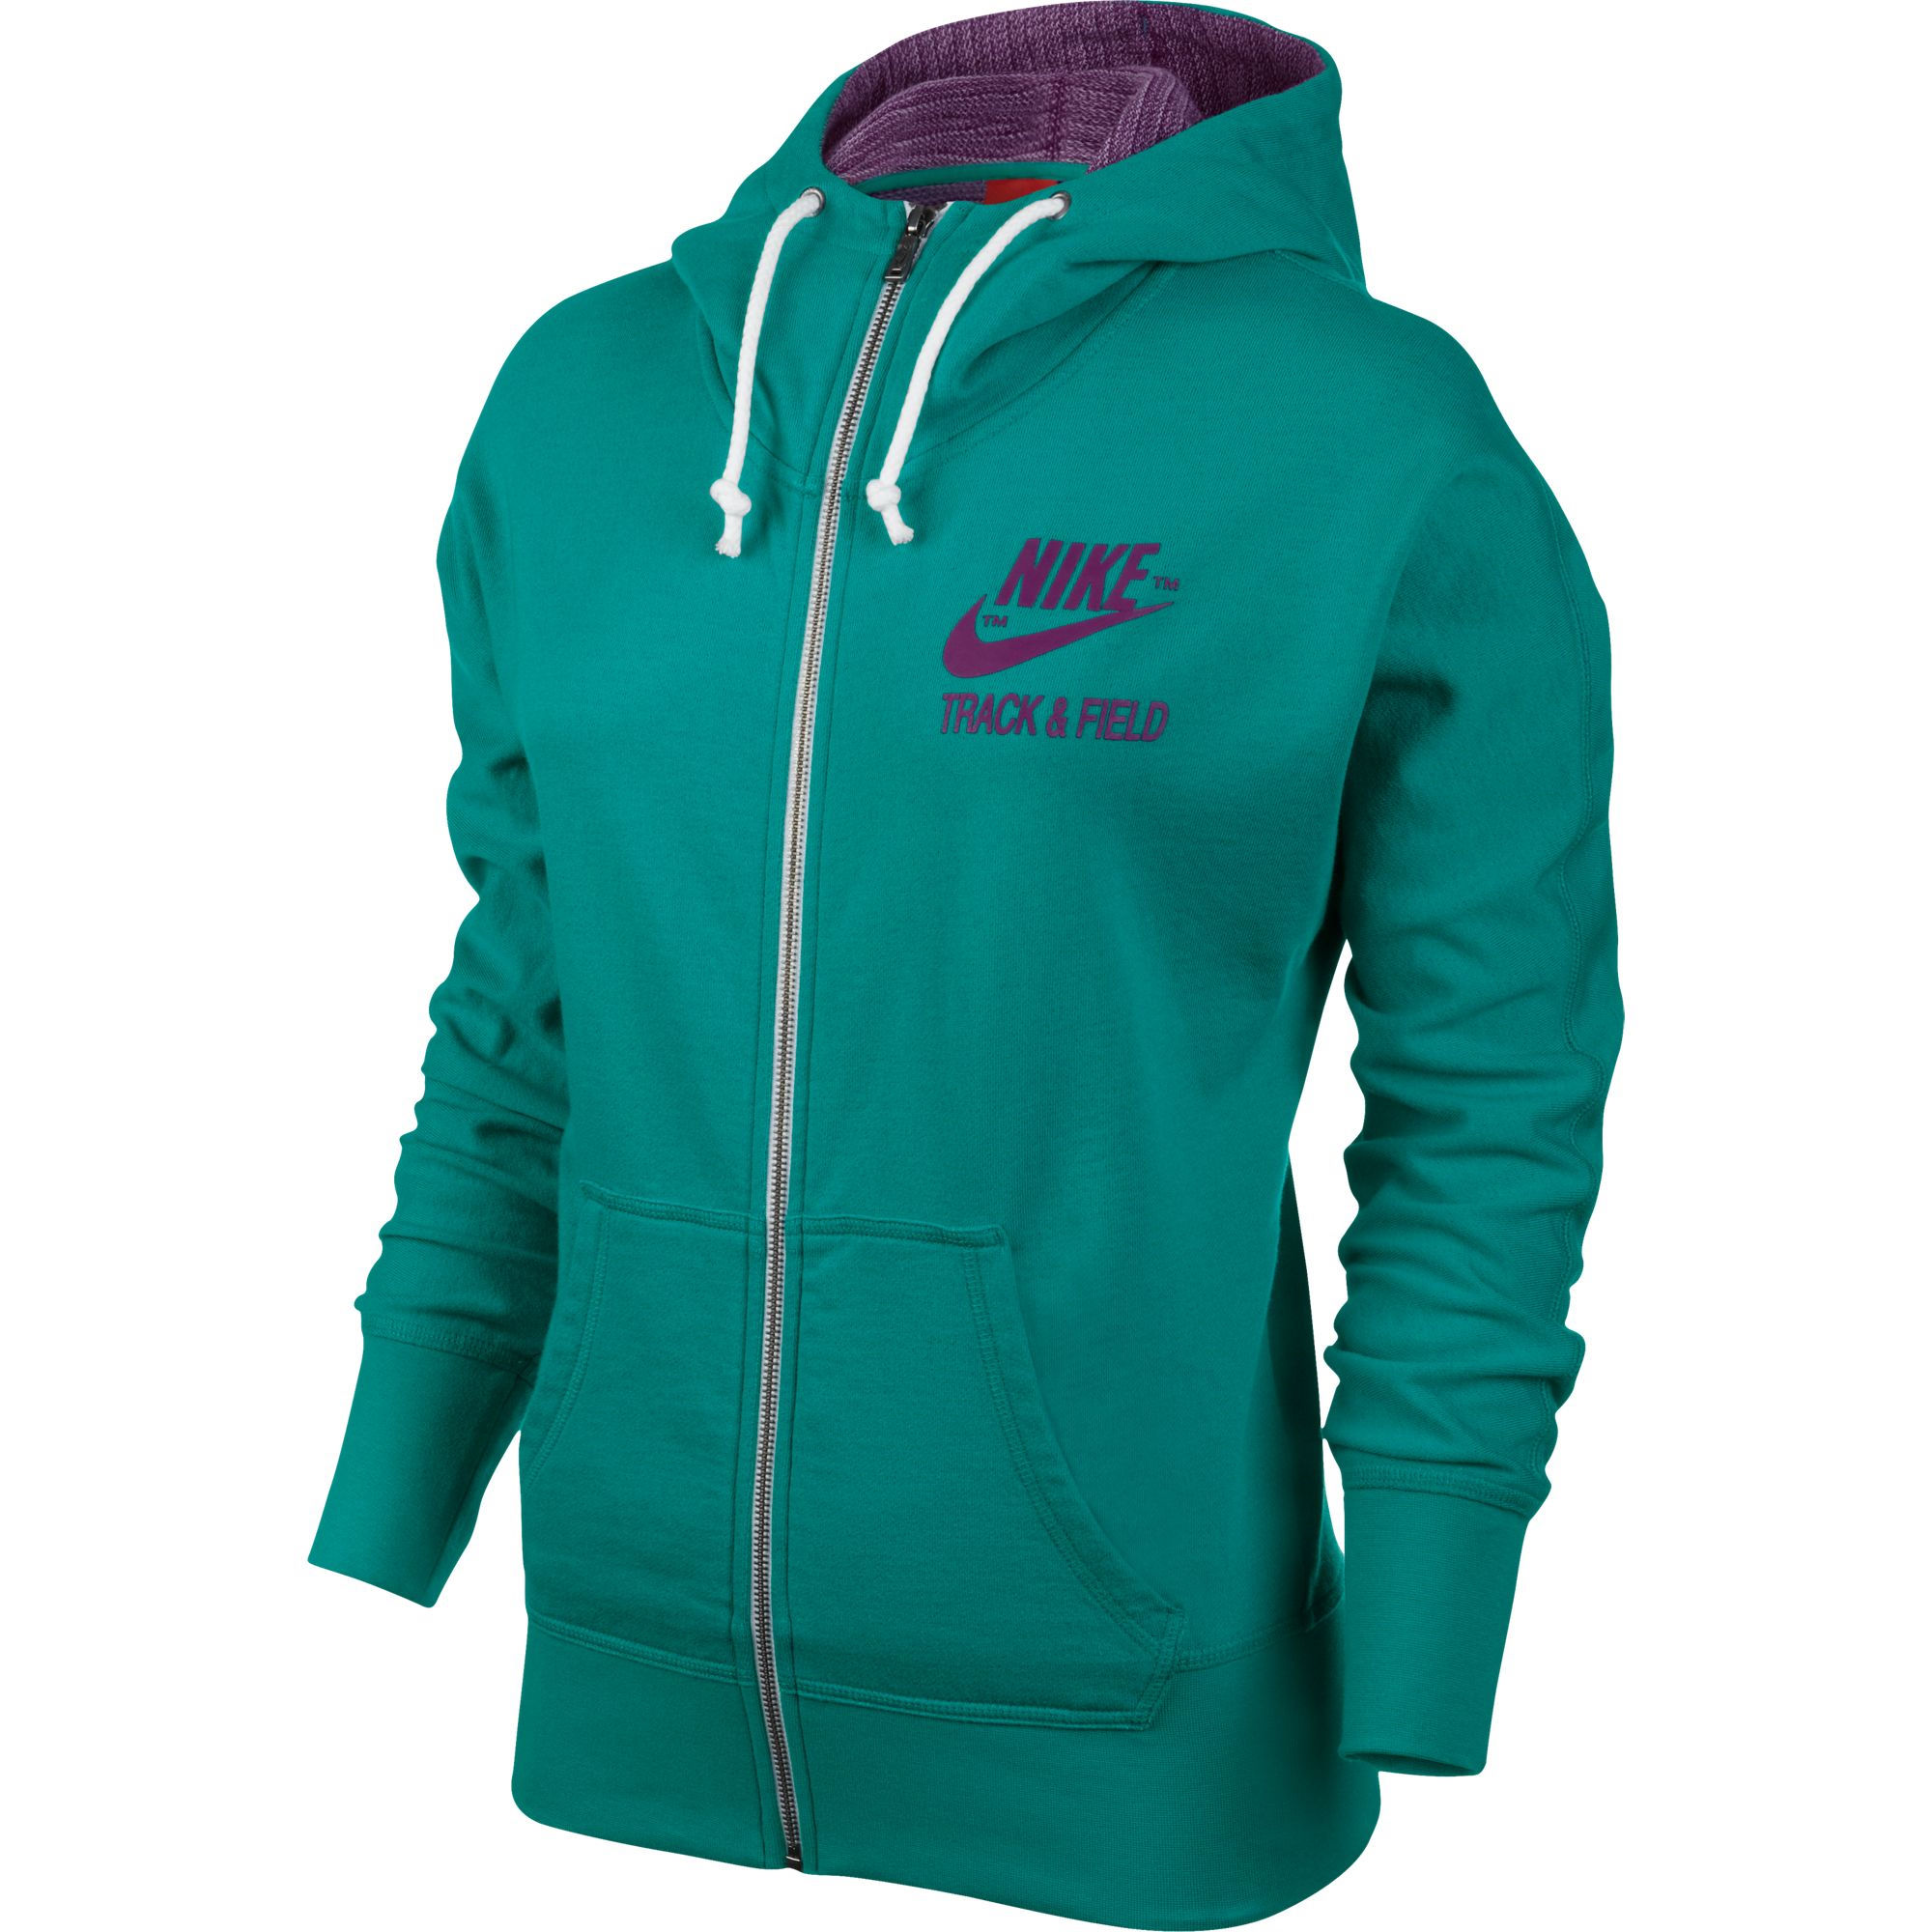 2 unidades Sport Set mujeres 2018 Ropa Deportiva Mujer